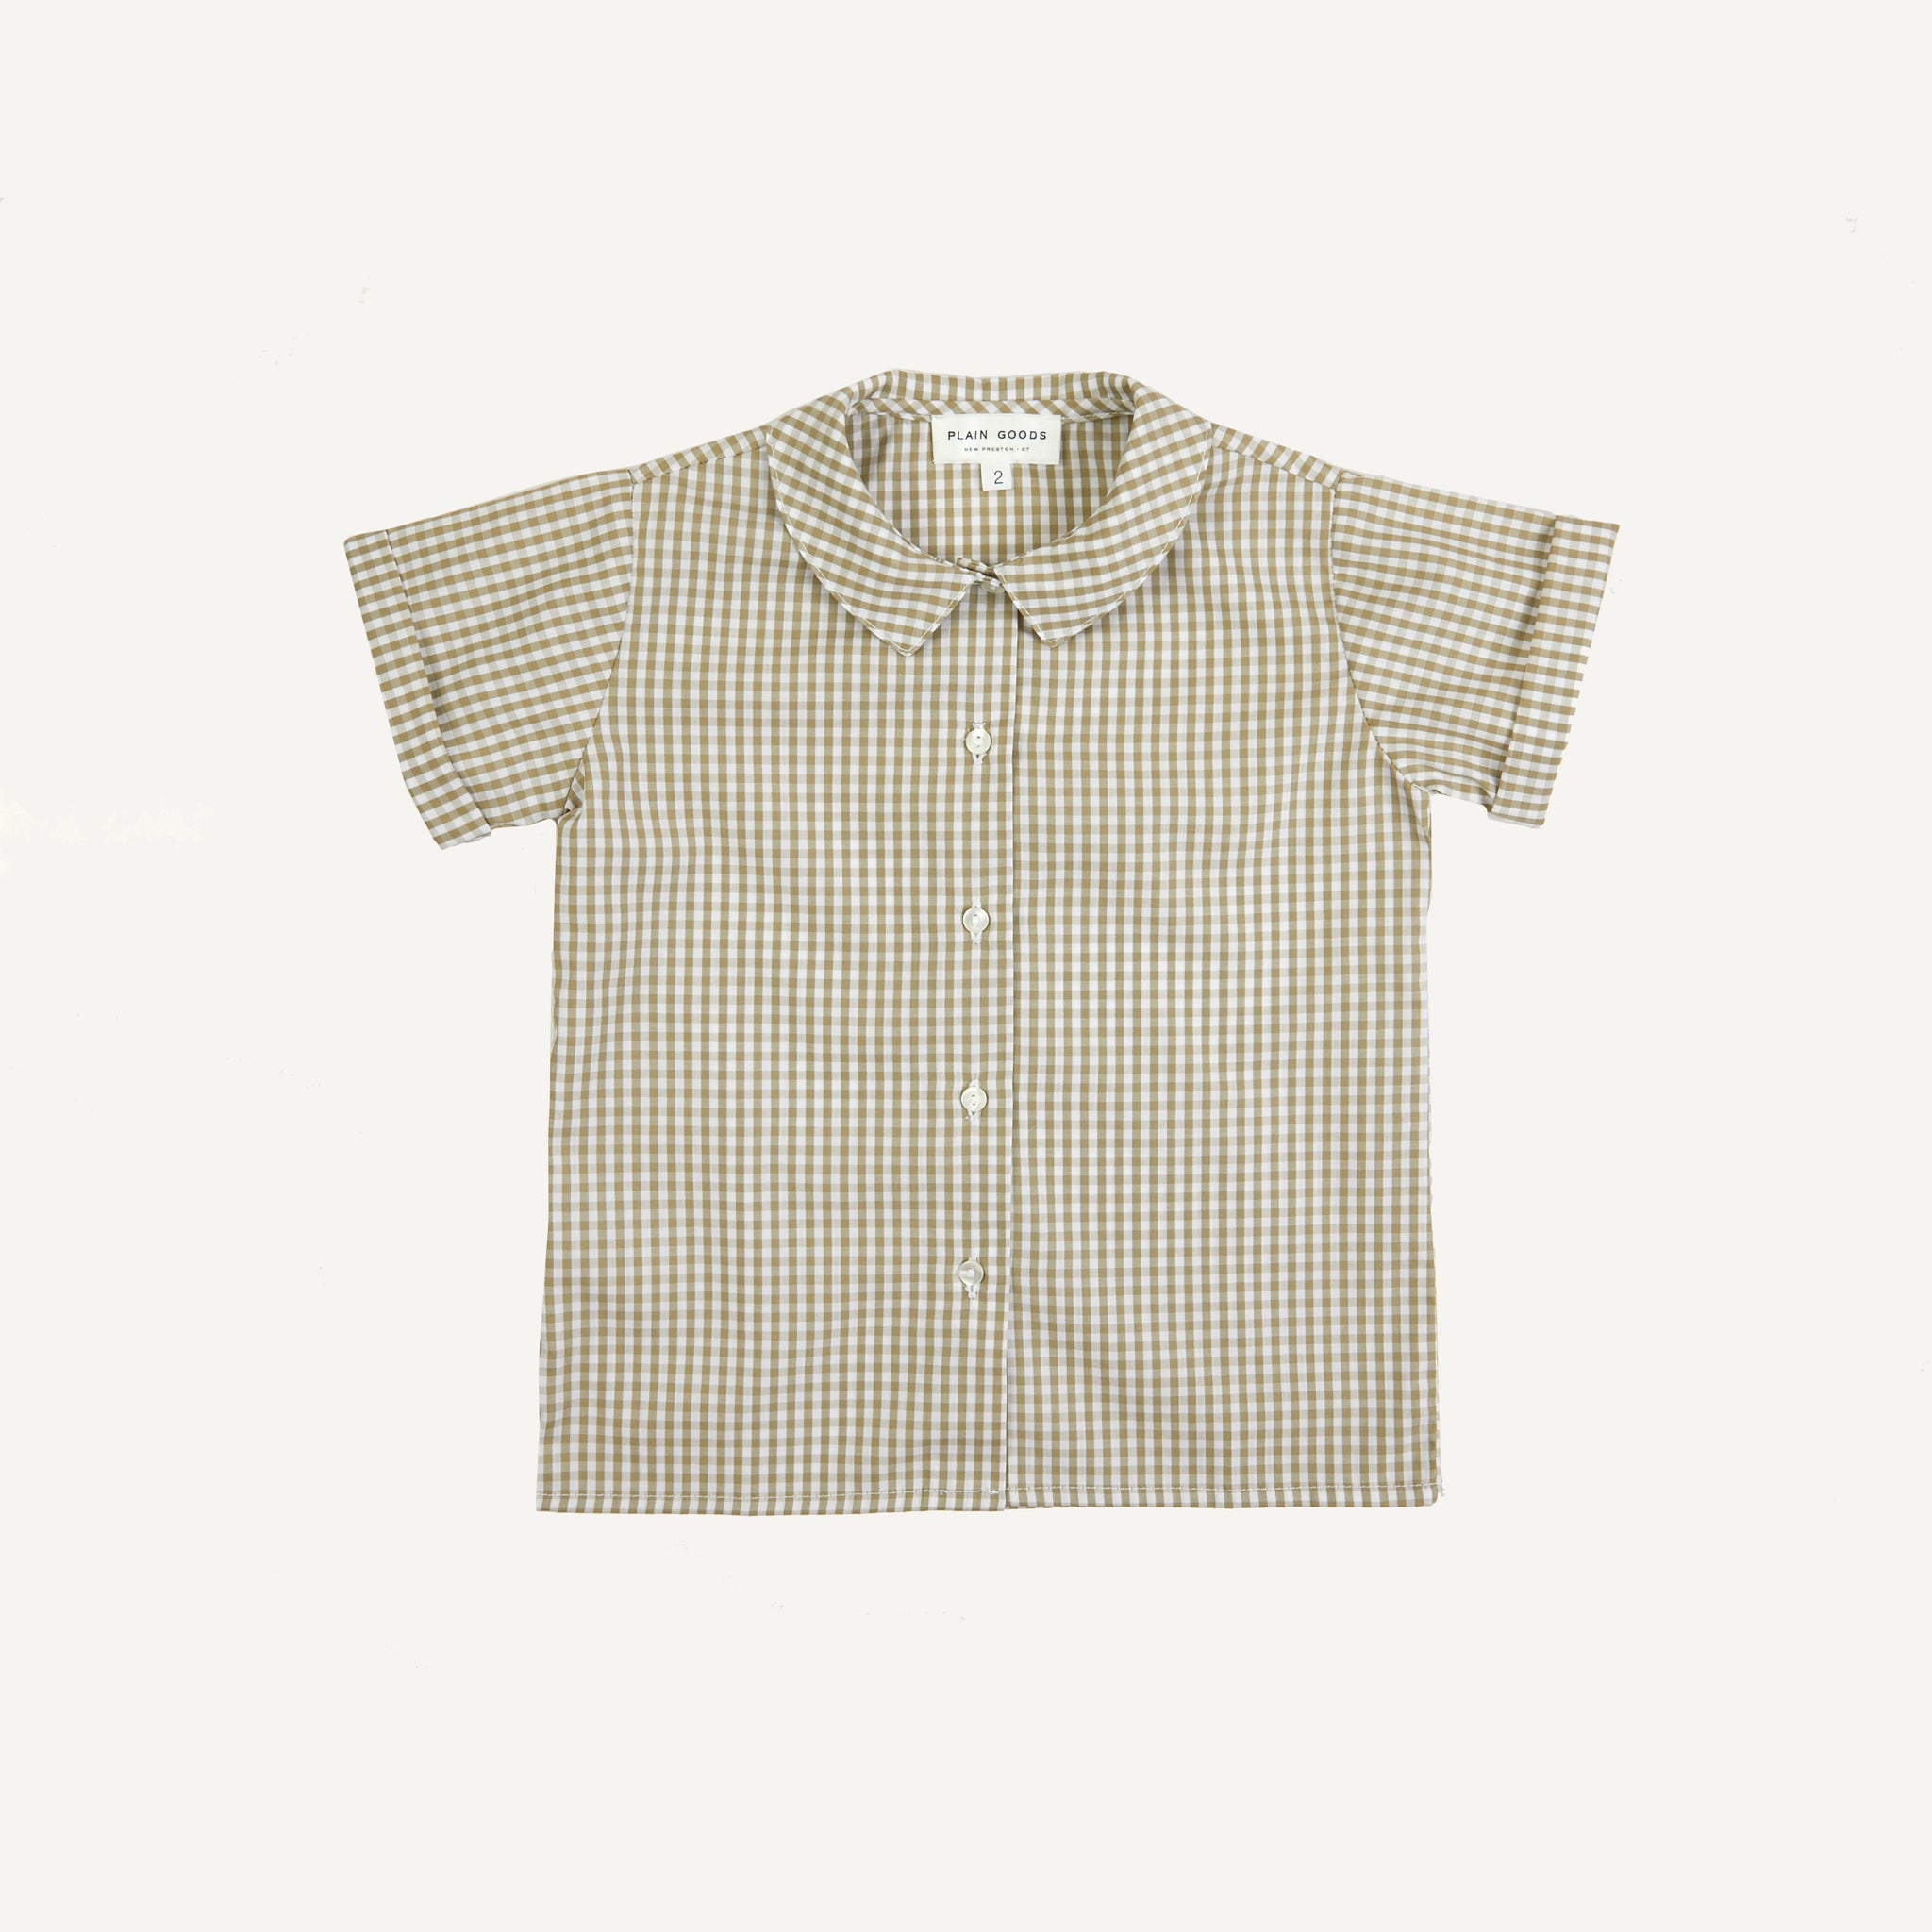 PLAIN GOODS GINGHAM SHIRT